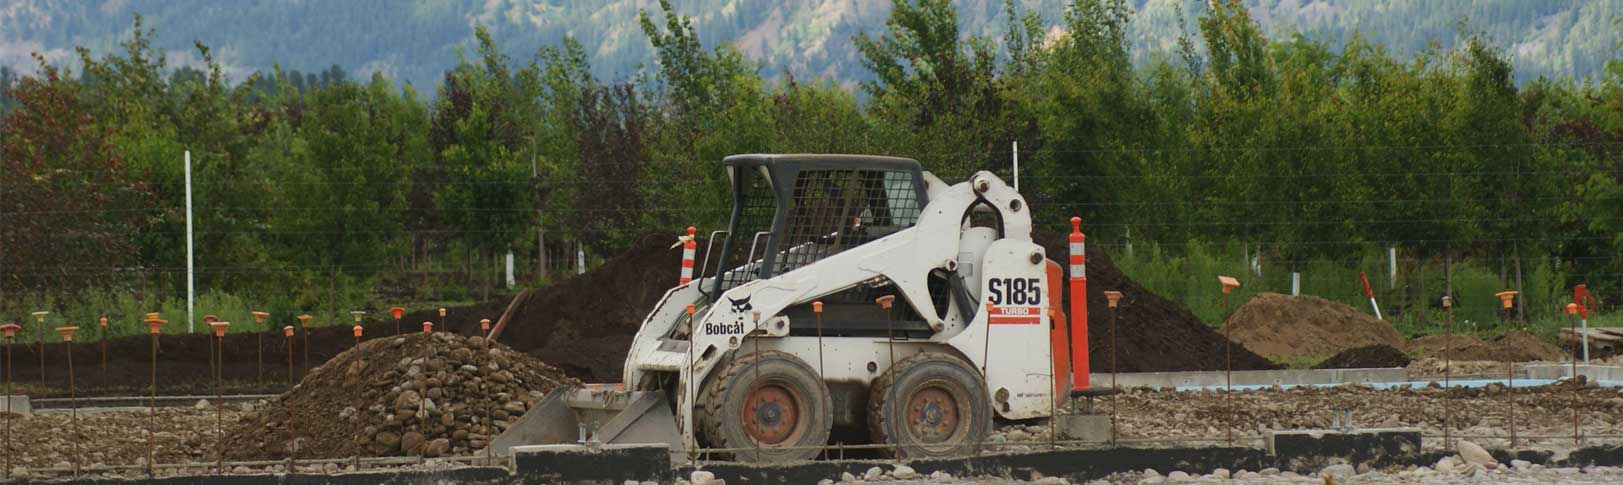 Equipment Rentals in the Quesnel BC area